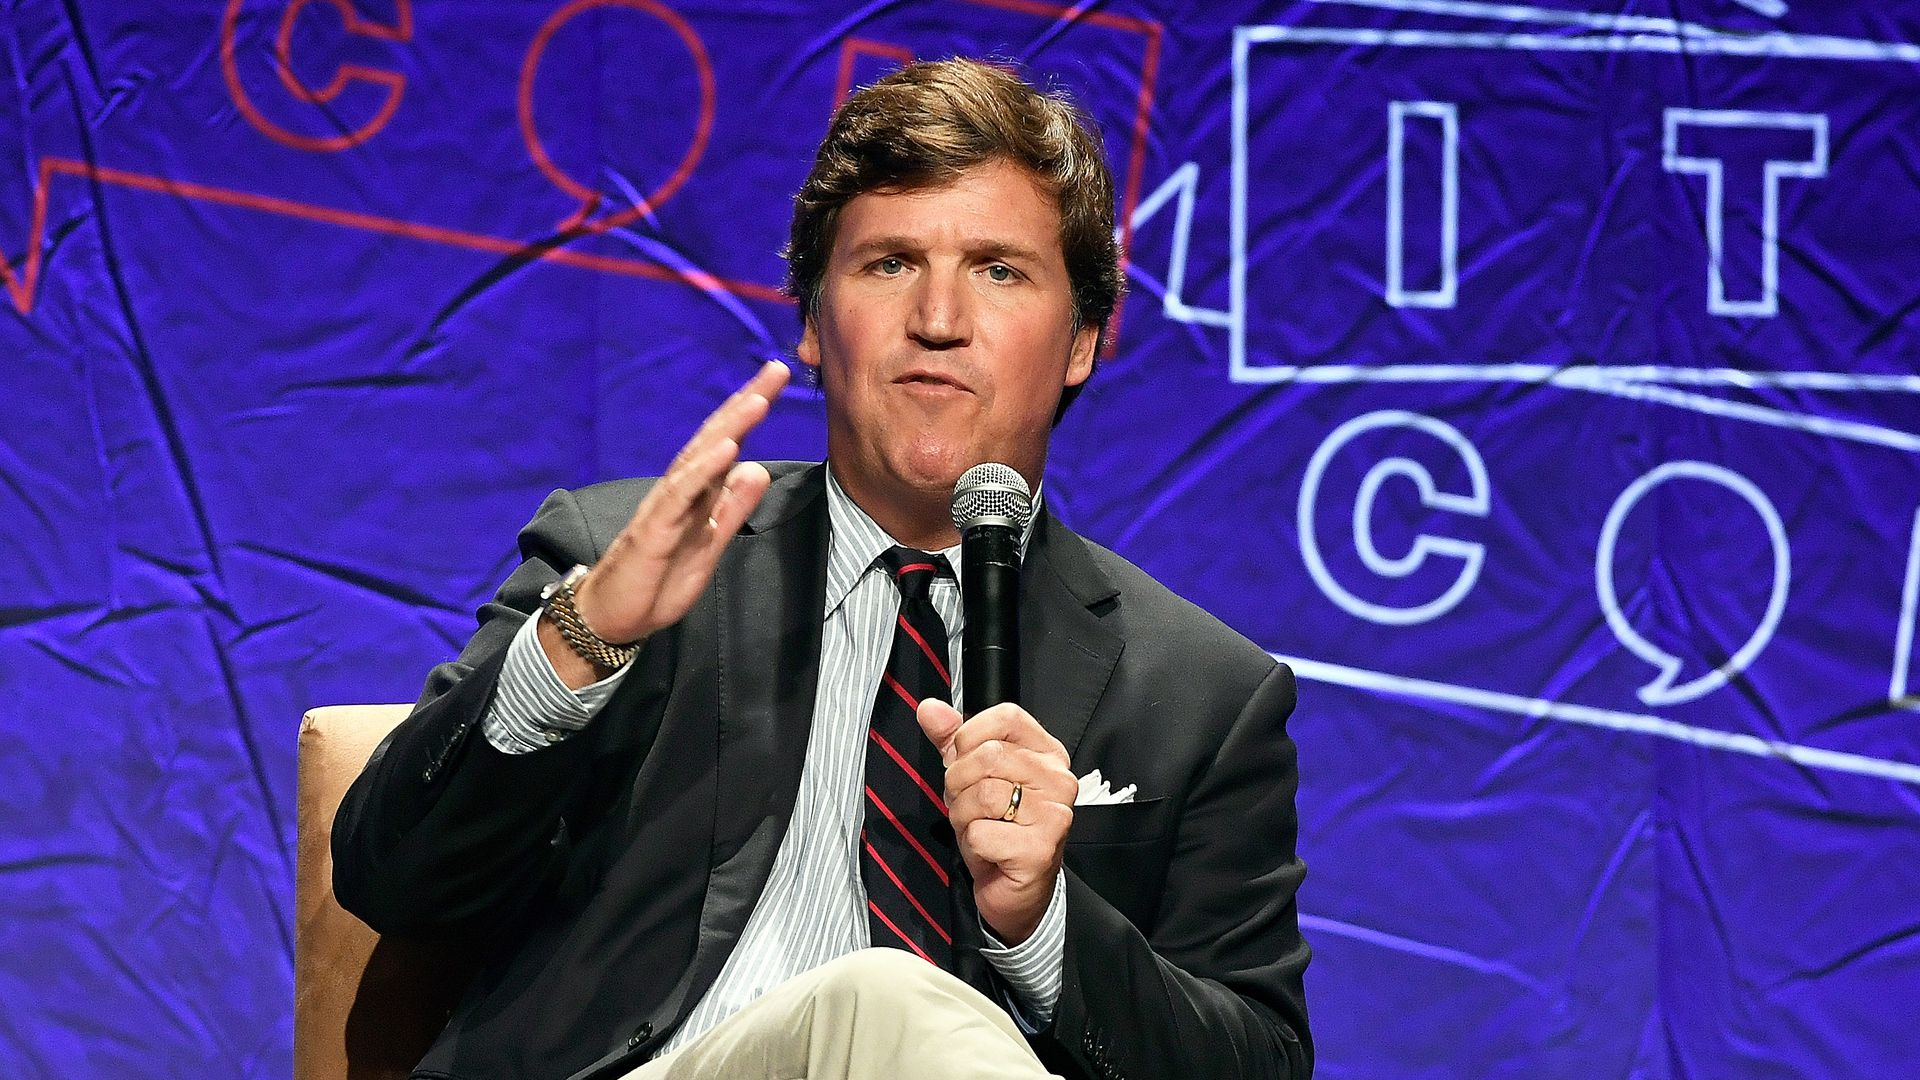 Fox News host Tucker Carlson defiantly responded to controversial audio of him that resurfaced this week.